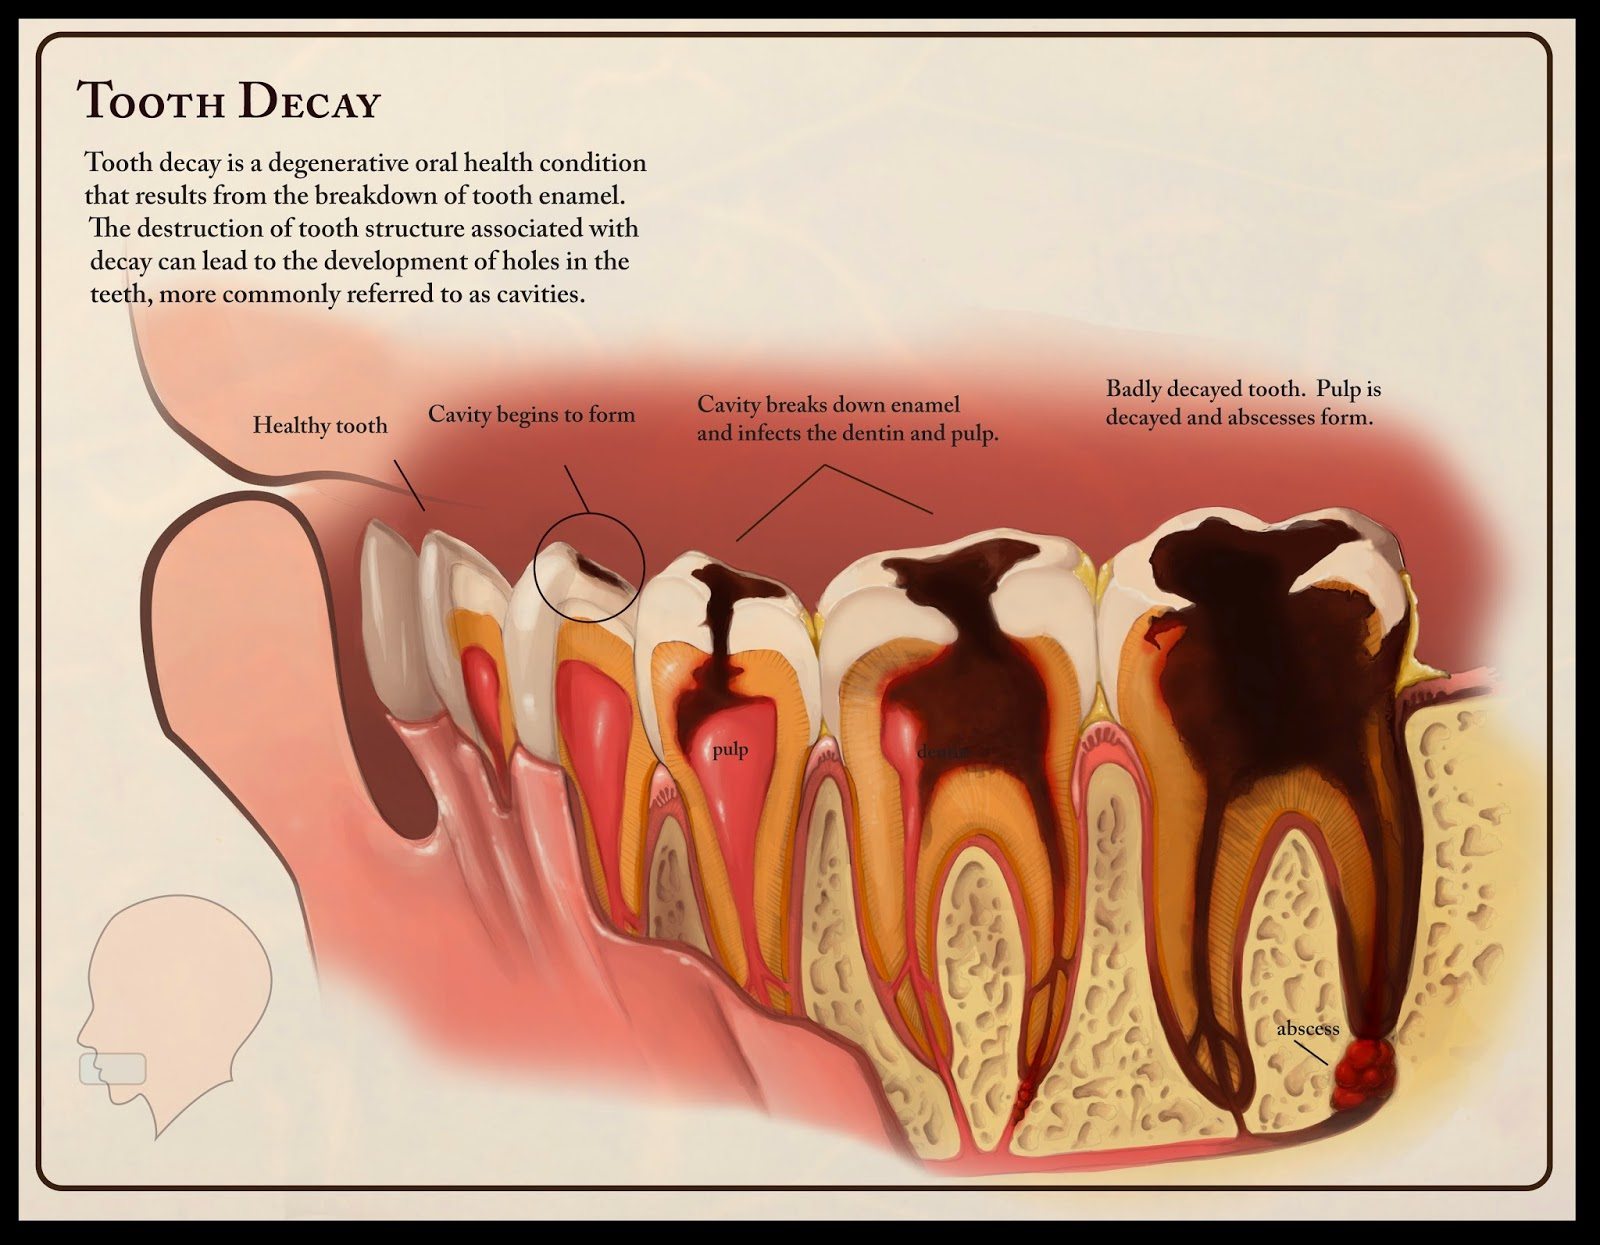 What causes tooth decay in adults